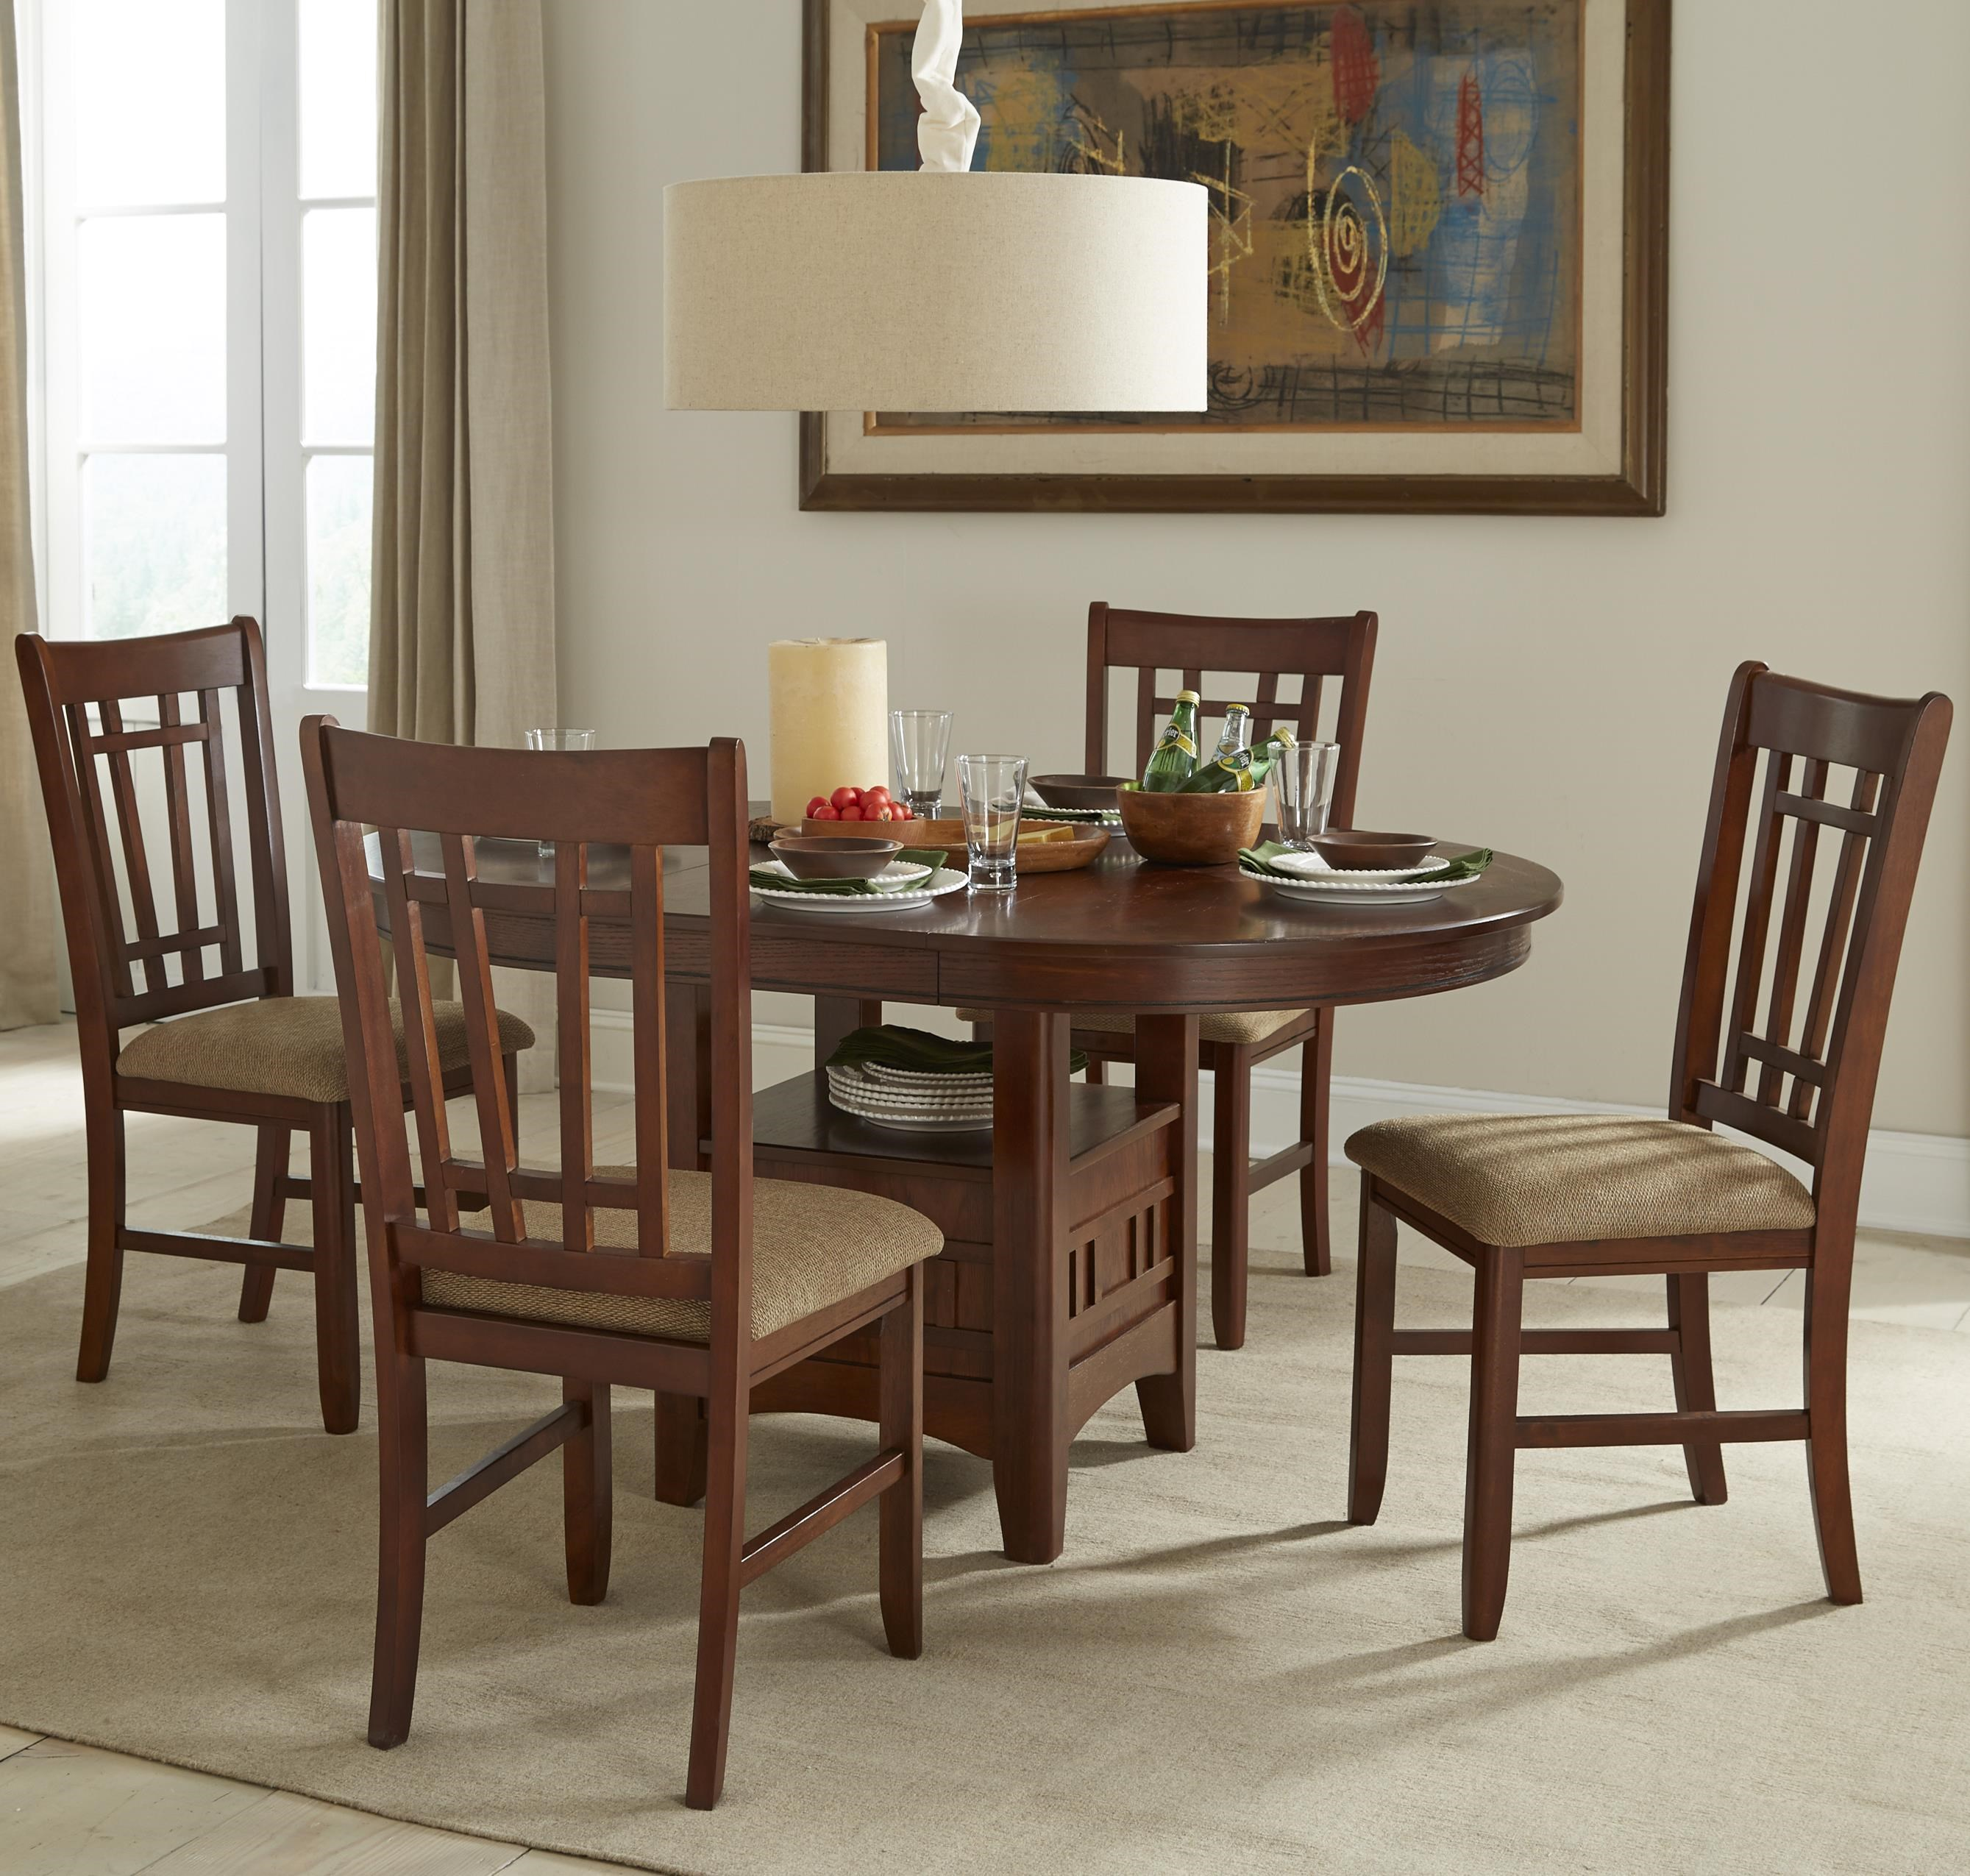 Great Intercon Mission Casuals Oval Dining Table Set With Cushioned Side Chairs